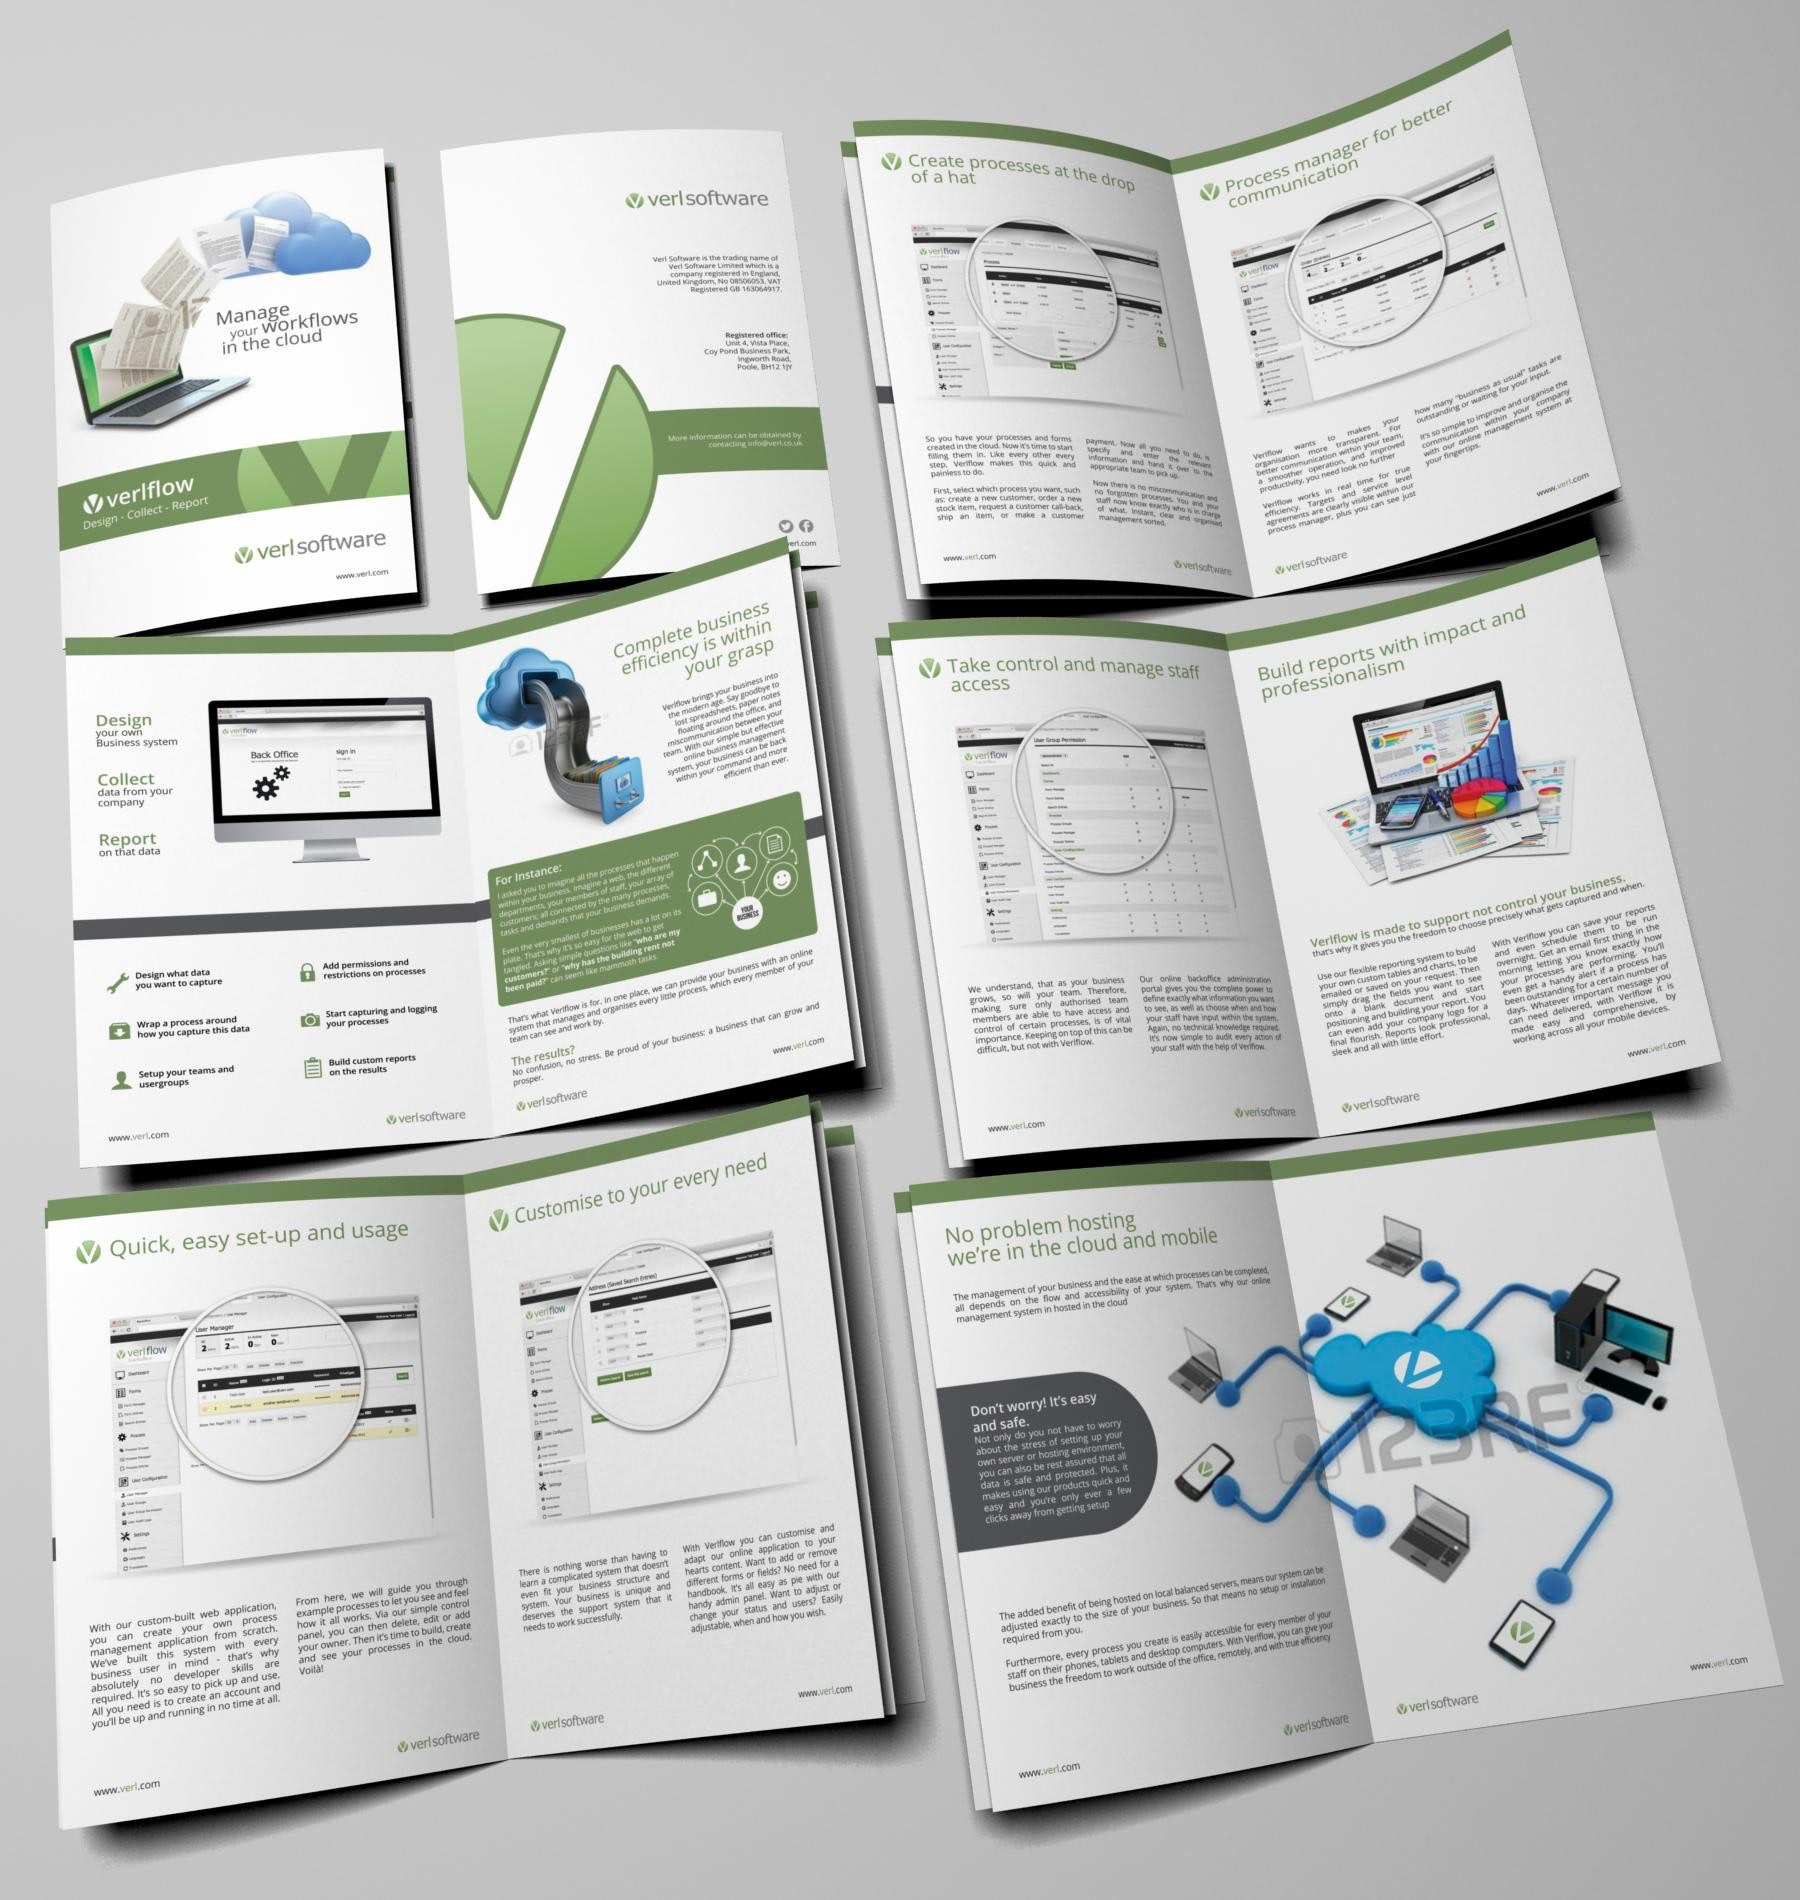 Verl Software brochure